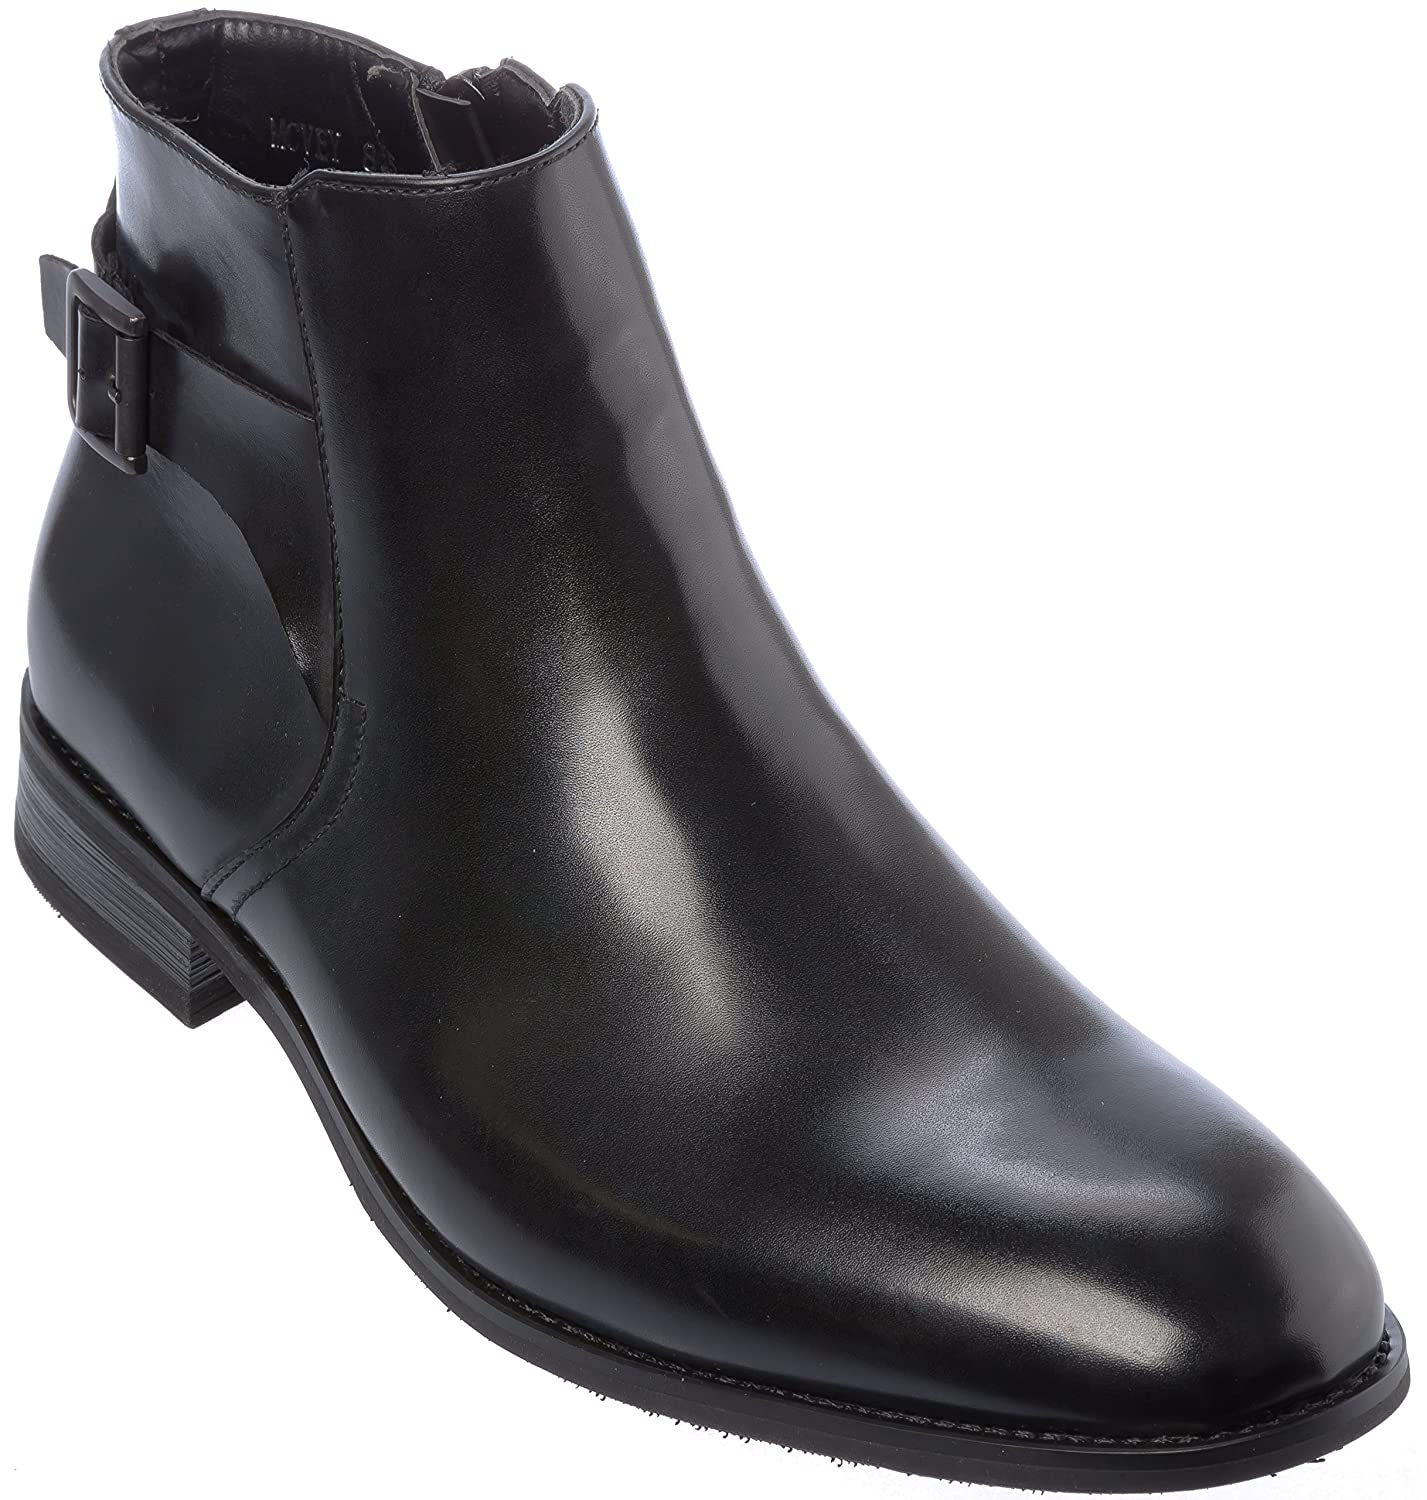 Mens Slip-On Oxford Boots Shoes mcveyBlack